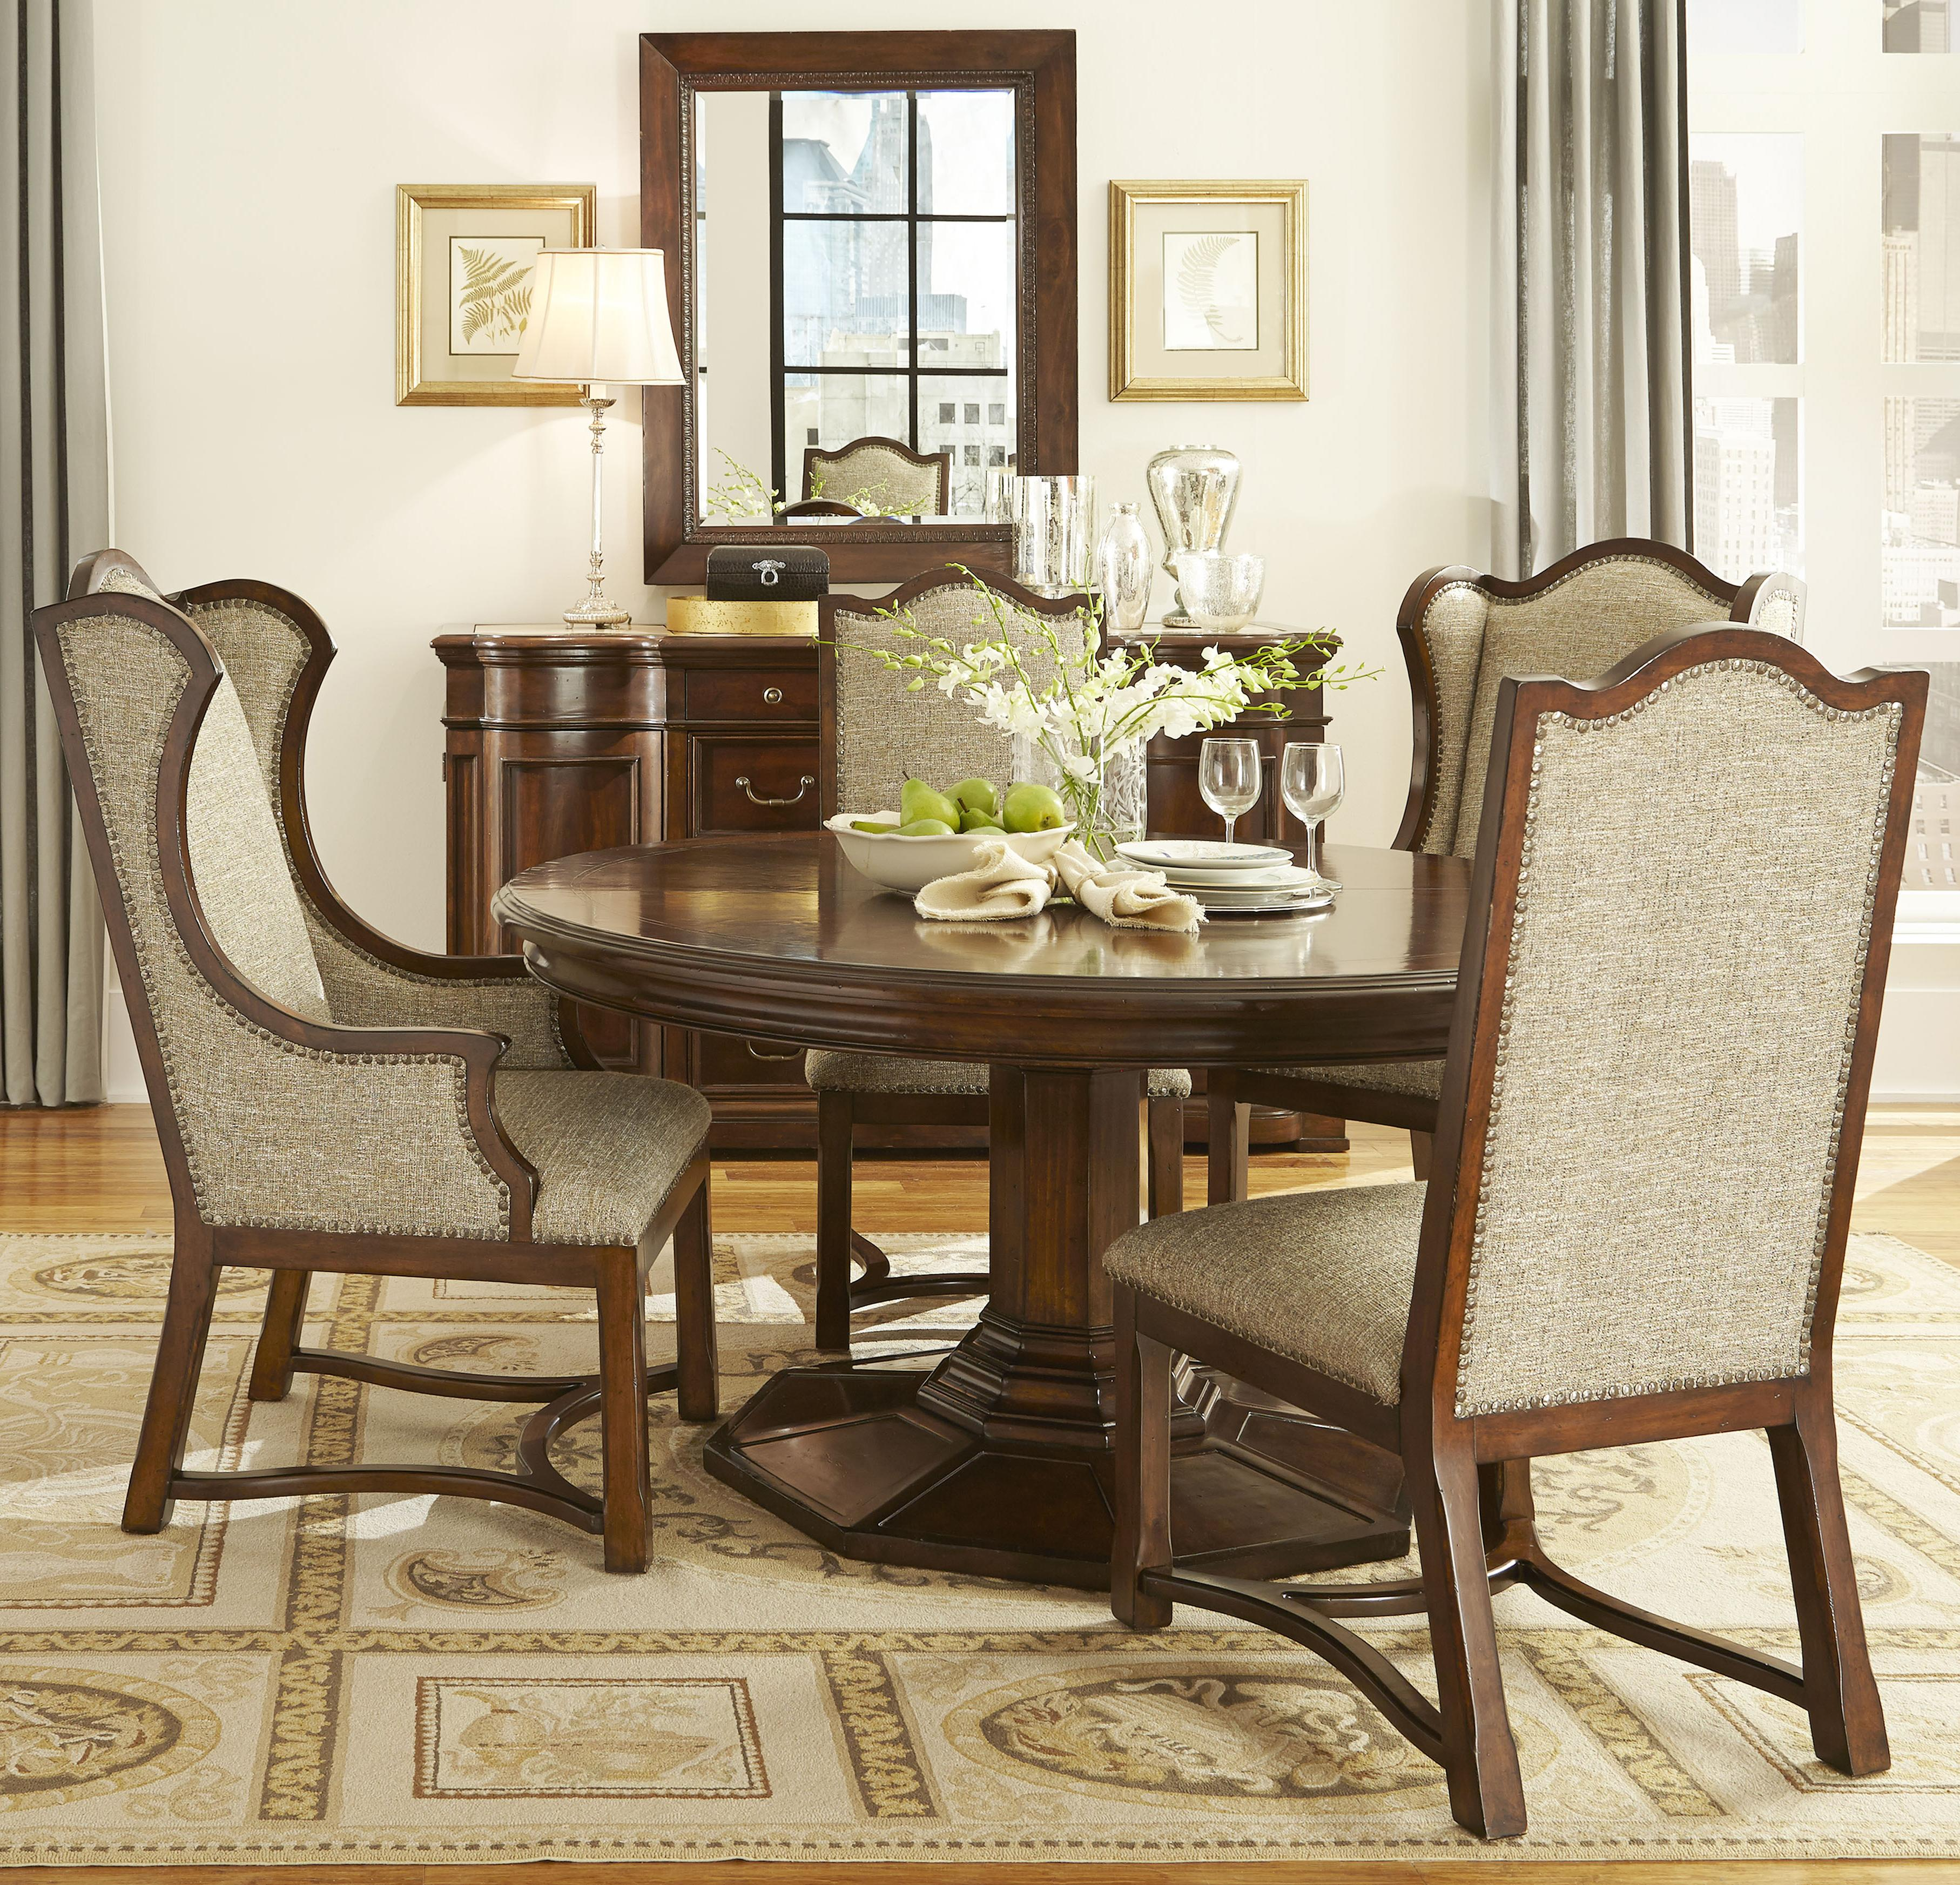 Belfort Signature Edwards Ferry 5 Piece Round Dining Table Set - Item Number: 210225-2106BS+TP+2x207+2x206